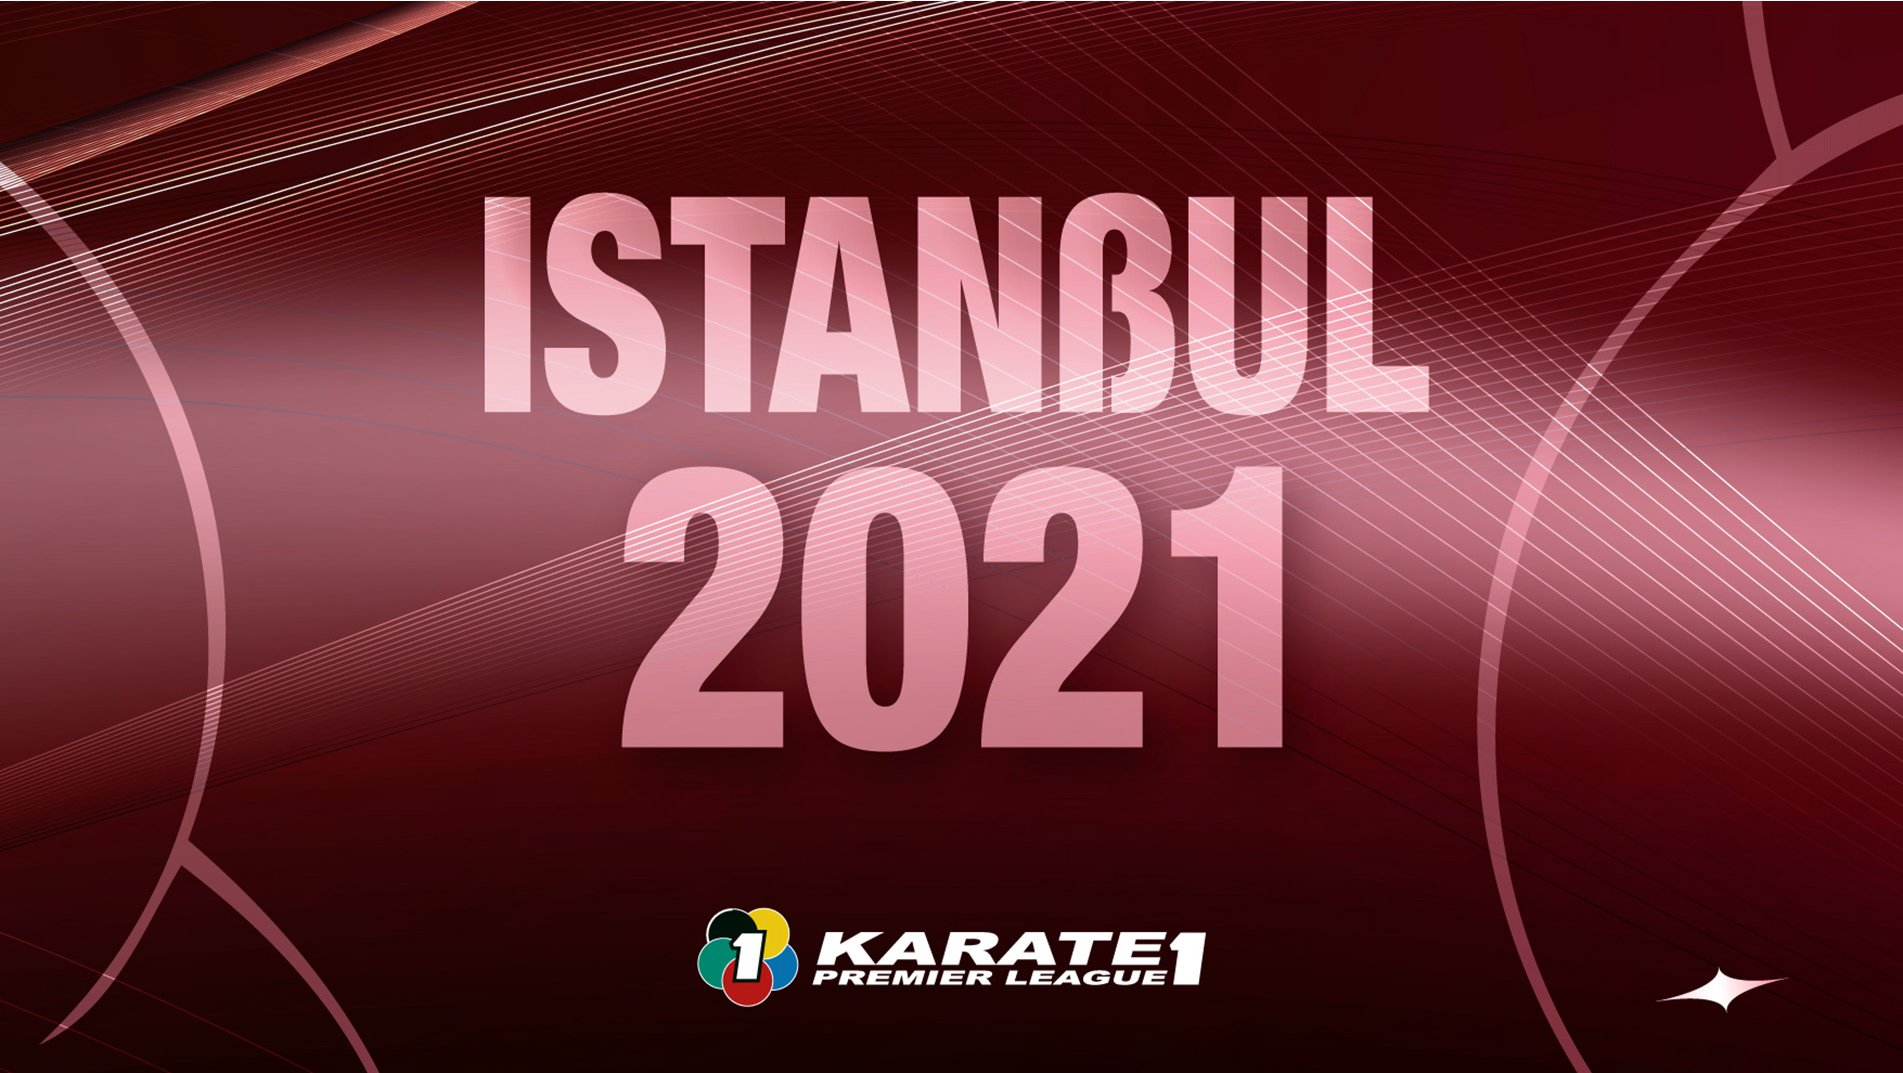 Bulletin of Karate 1 Premier League Istanbul now online